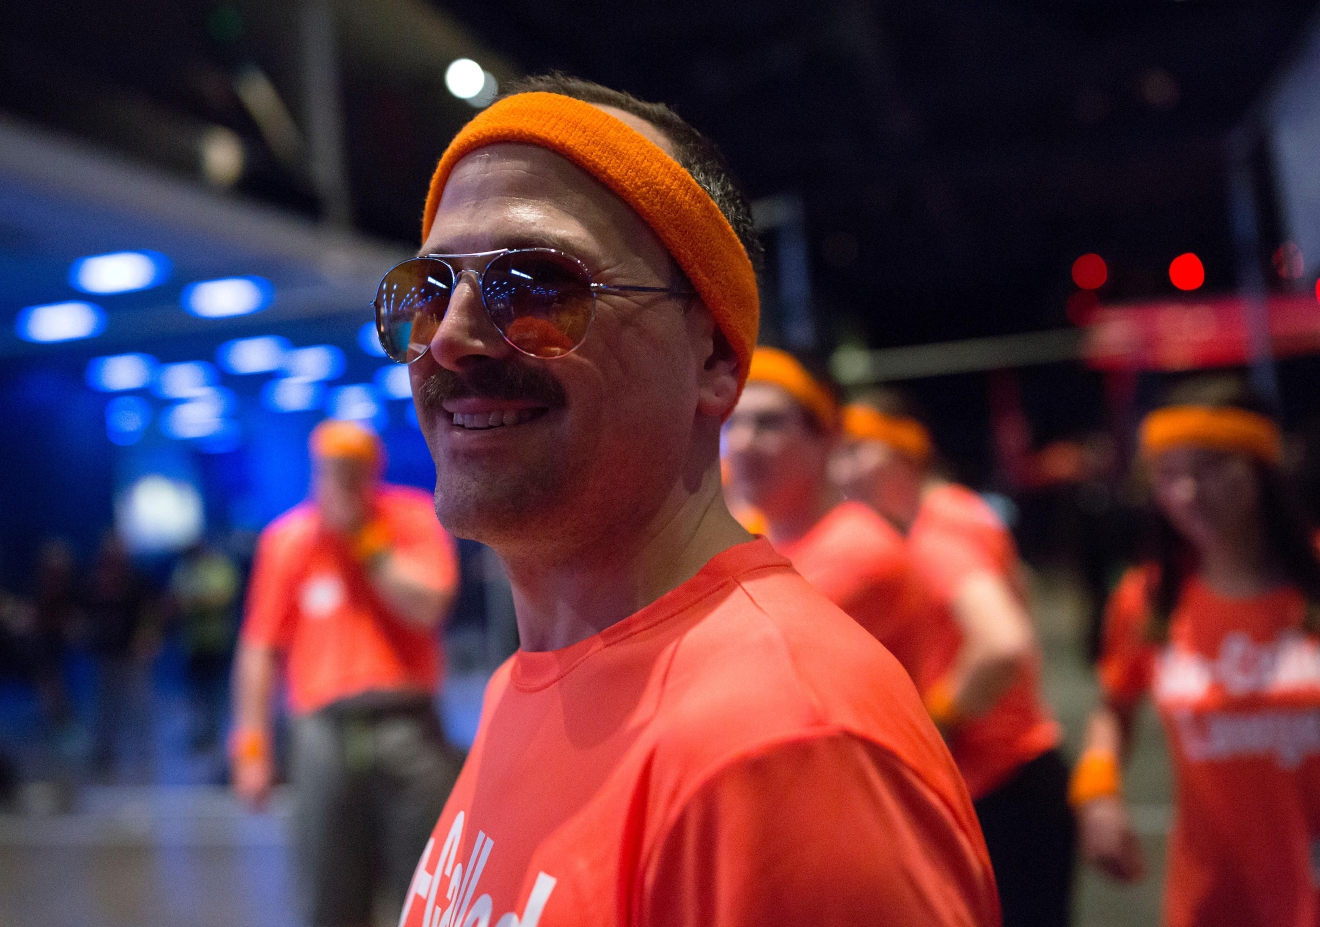 Jonathon Bashford waits on the sidelines during a game of dodgeball at the 6th annual Geekwire Bash at the CenturyLink Event Center. (Sy Bean / Seattle Refined)